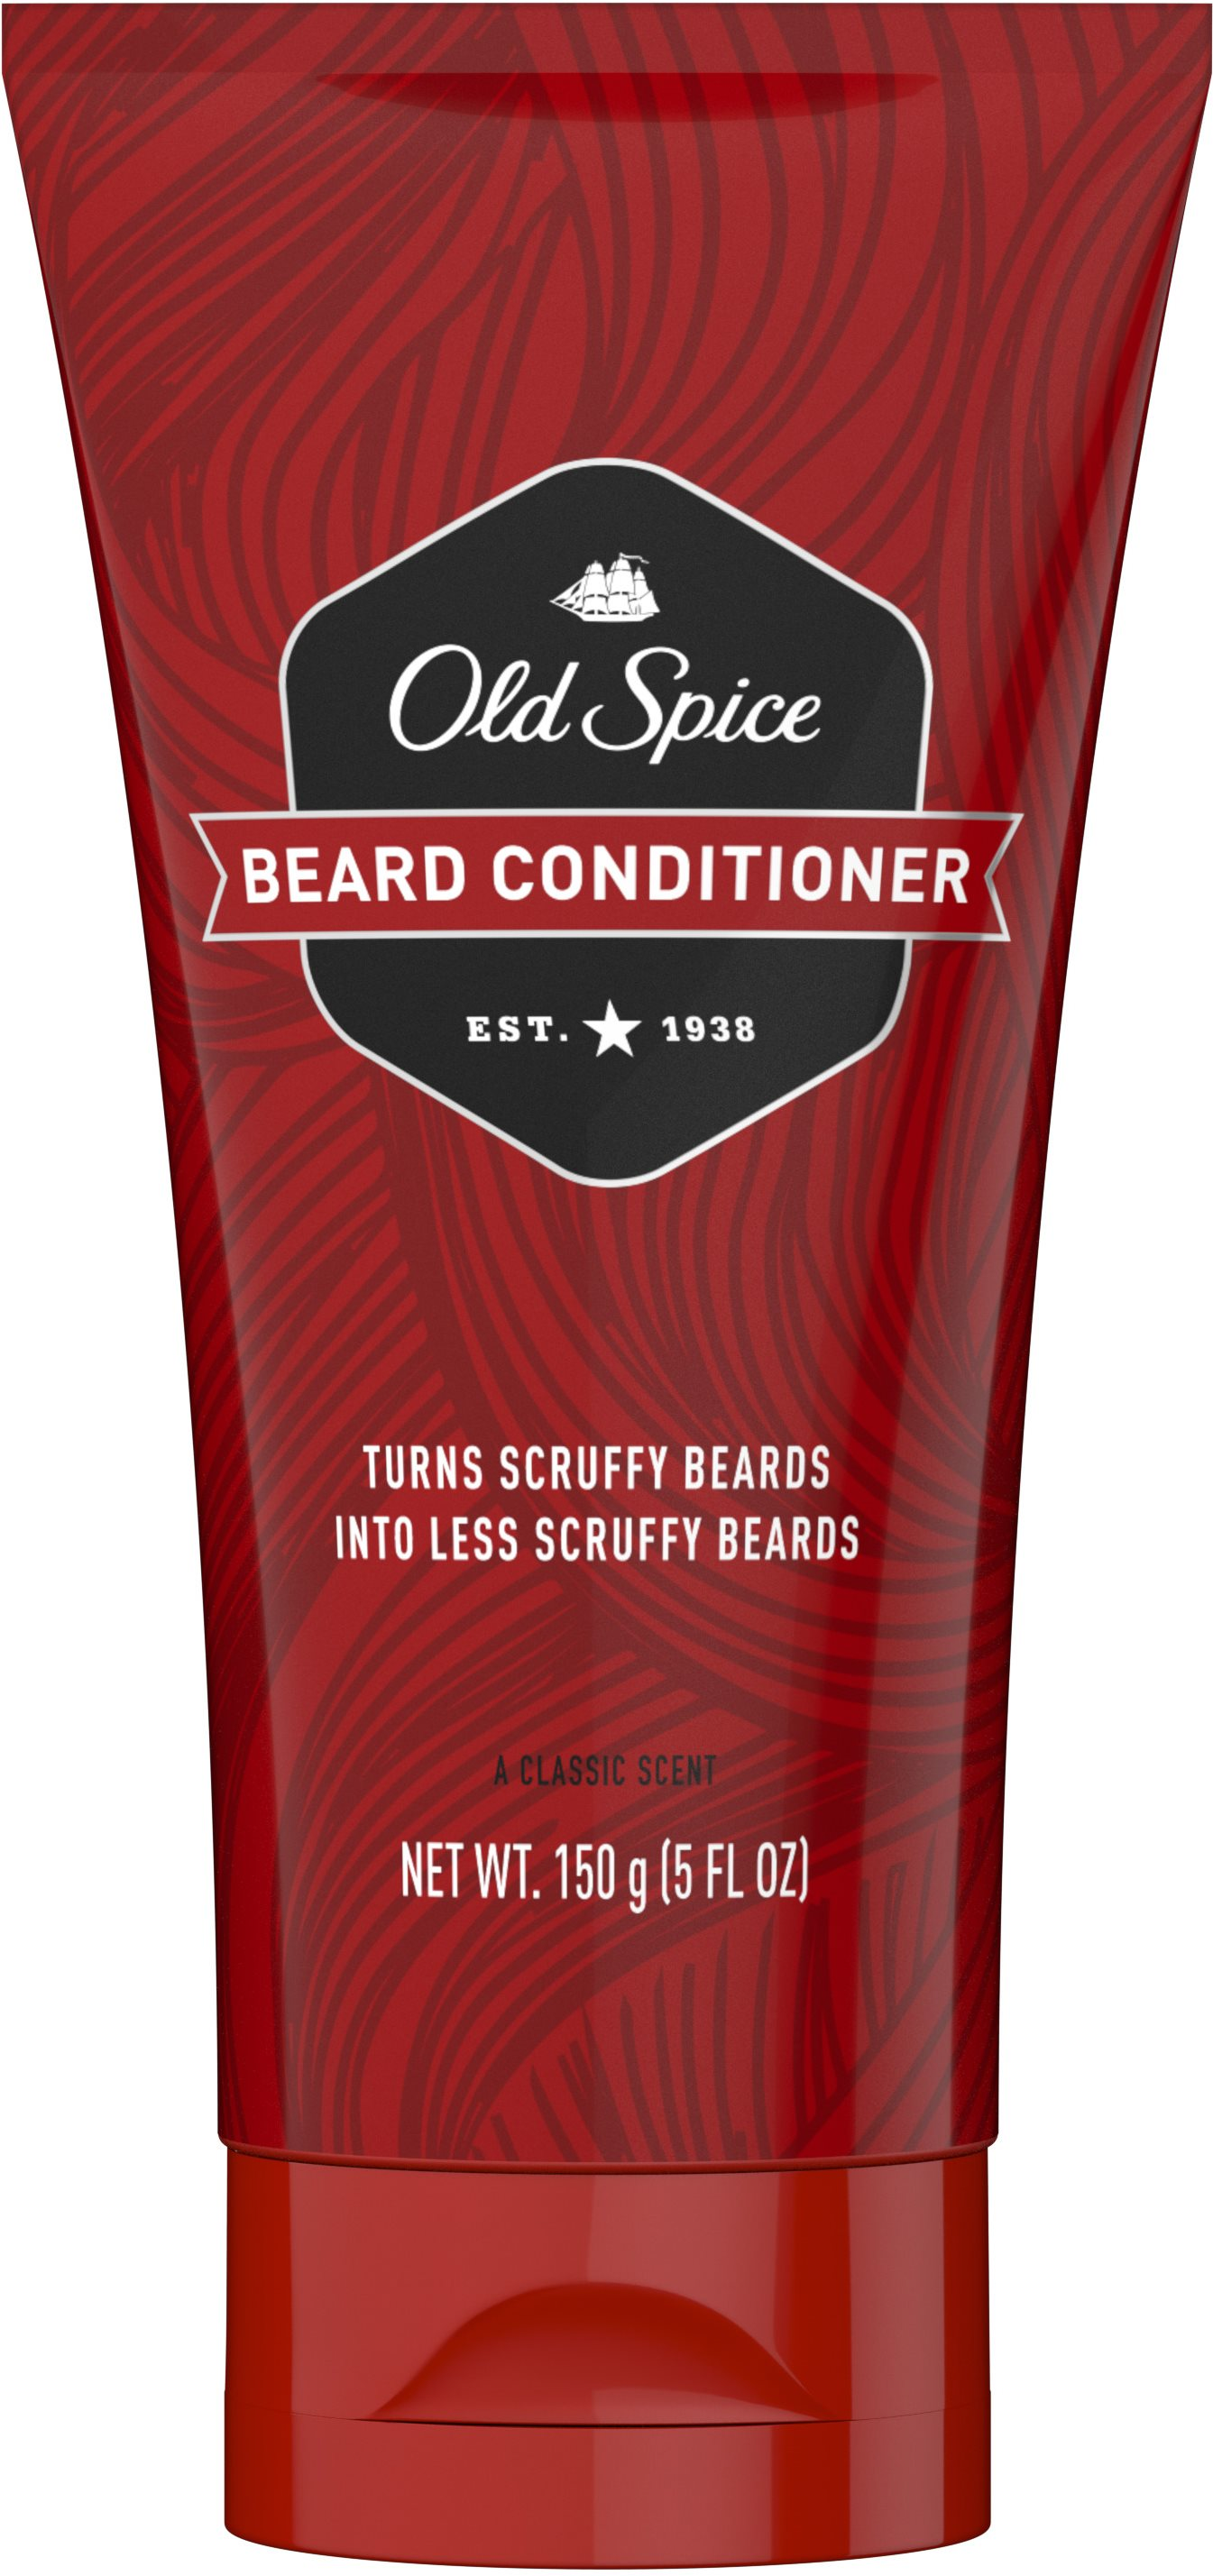 OLD SPICE Beard Conditioner 150 g